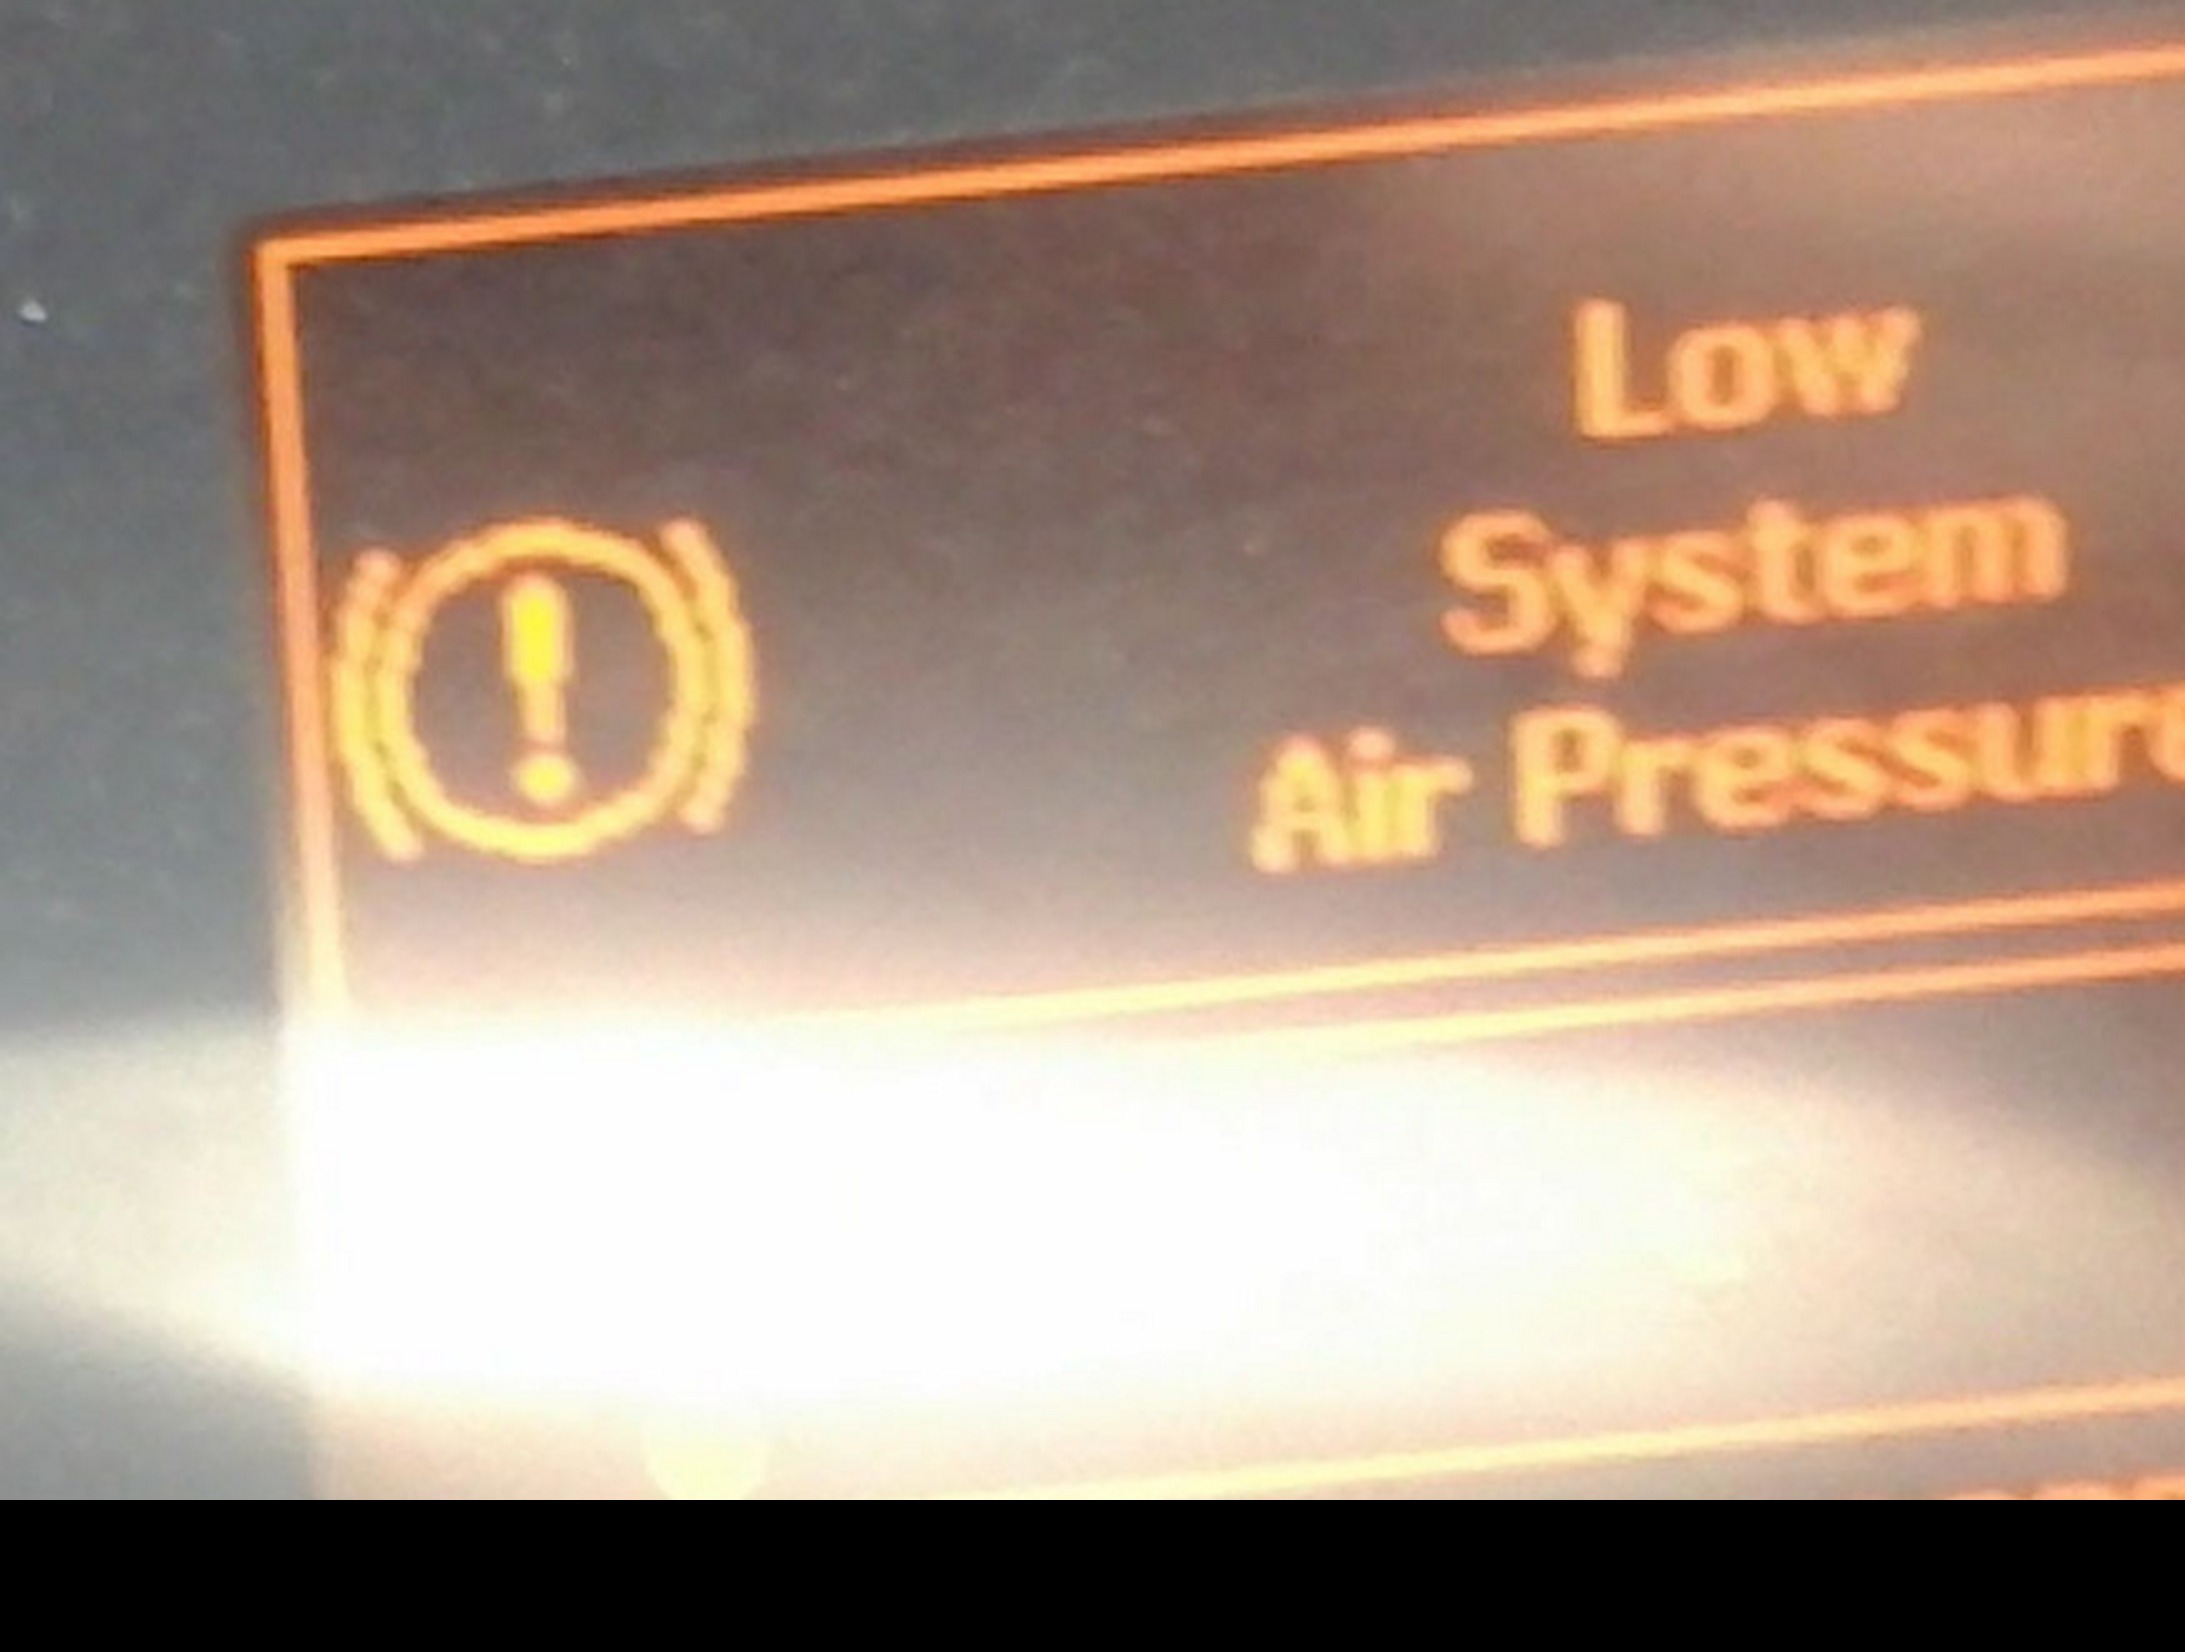 Low Air Pressure Warning replacement sound ATS -Euro Truck